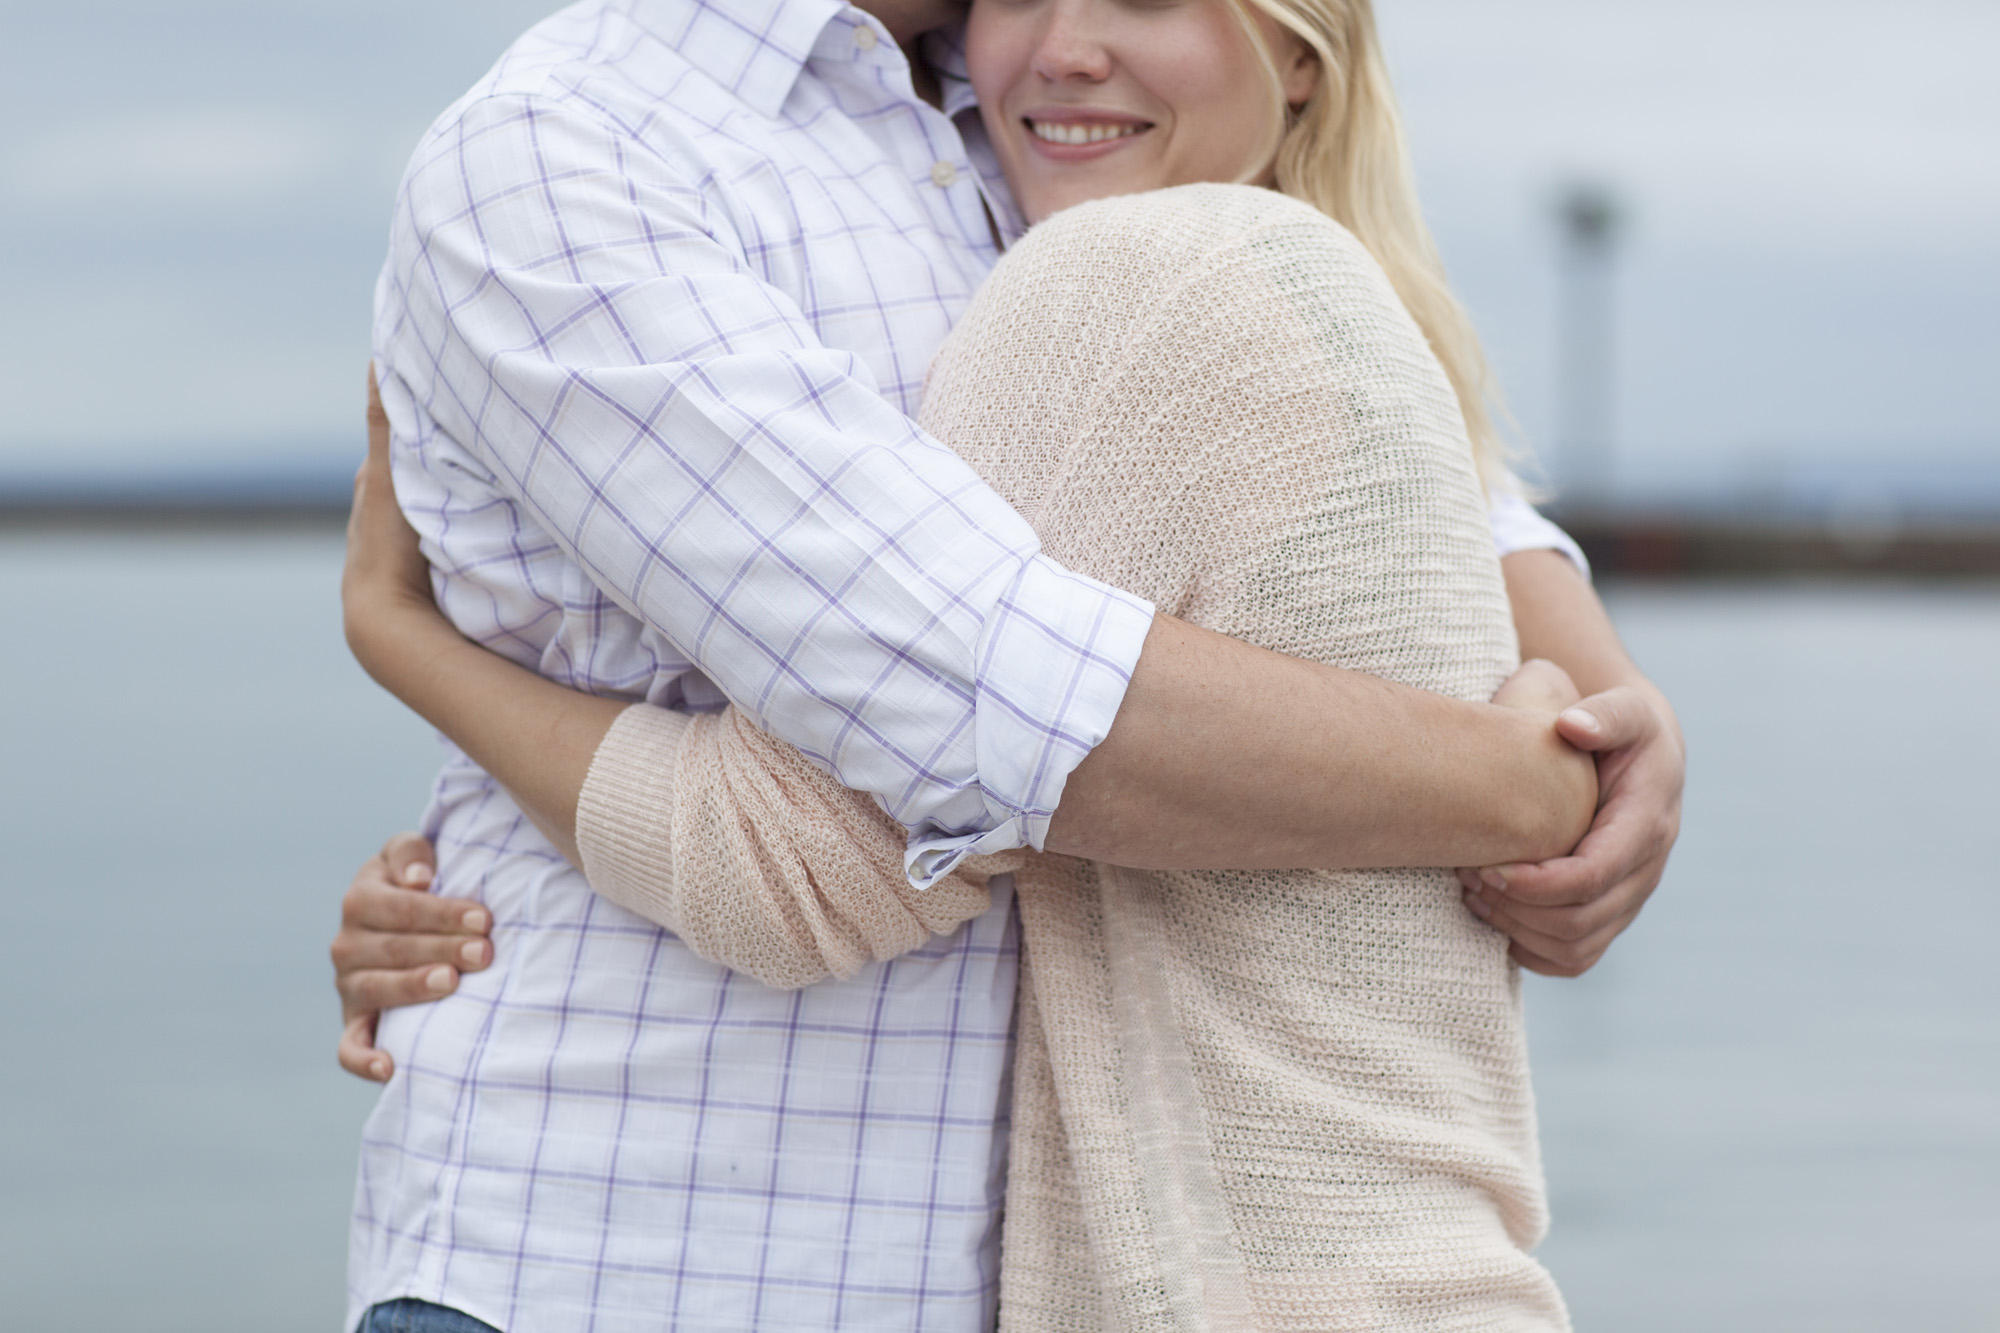 Beach_Sailboat_Engagement_003.jpg